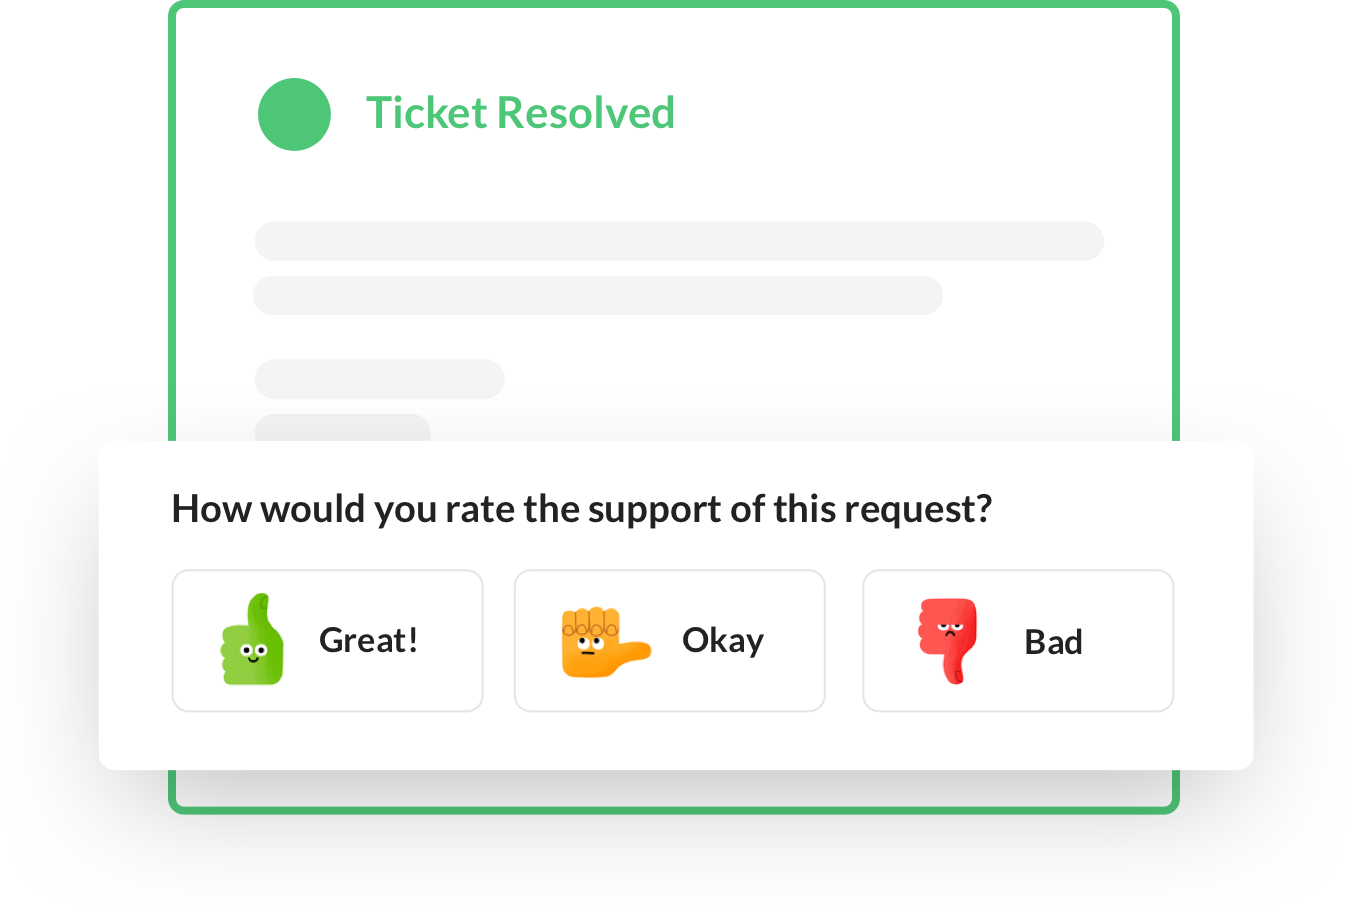 One-click CSAT surveys can be embedded in helpdesks